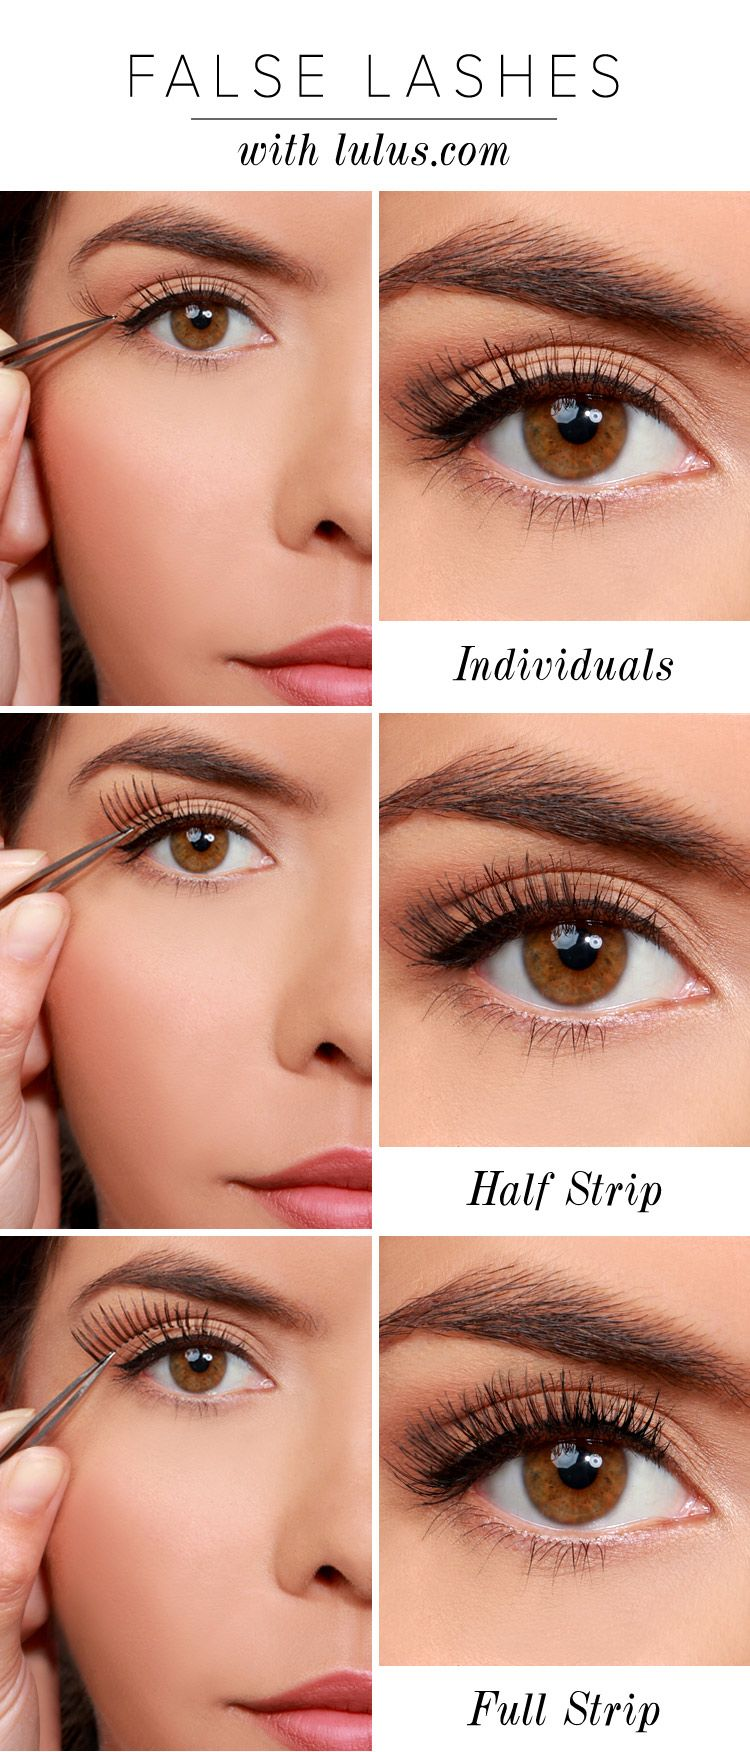 Lulus How-To: 11 Ways to Wear False Eyelashes - Lulus.com Fashion